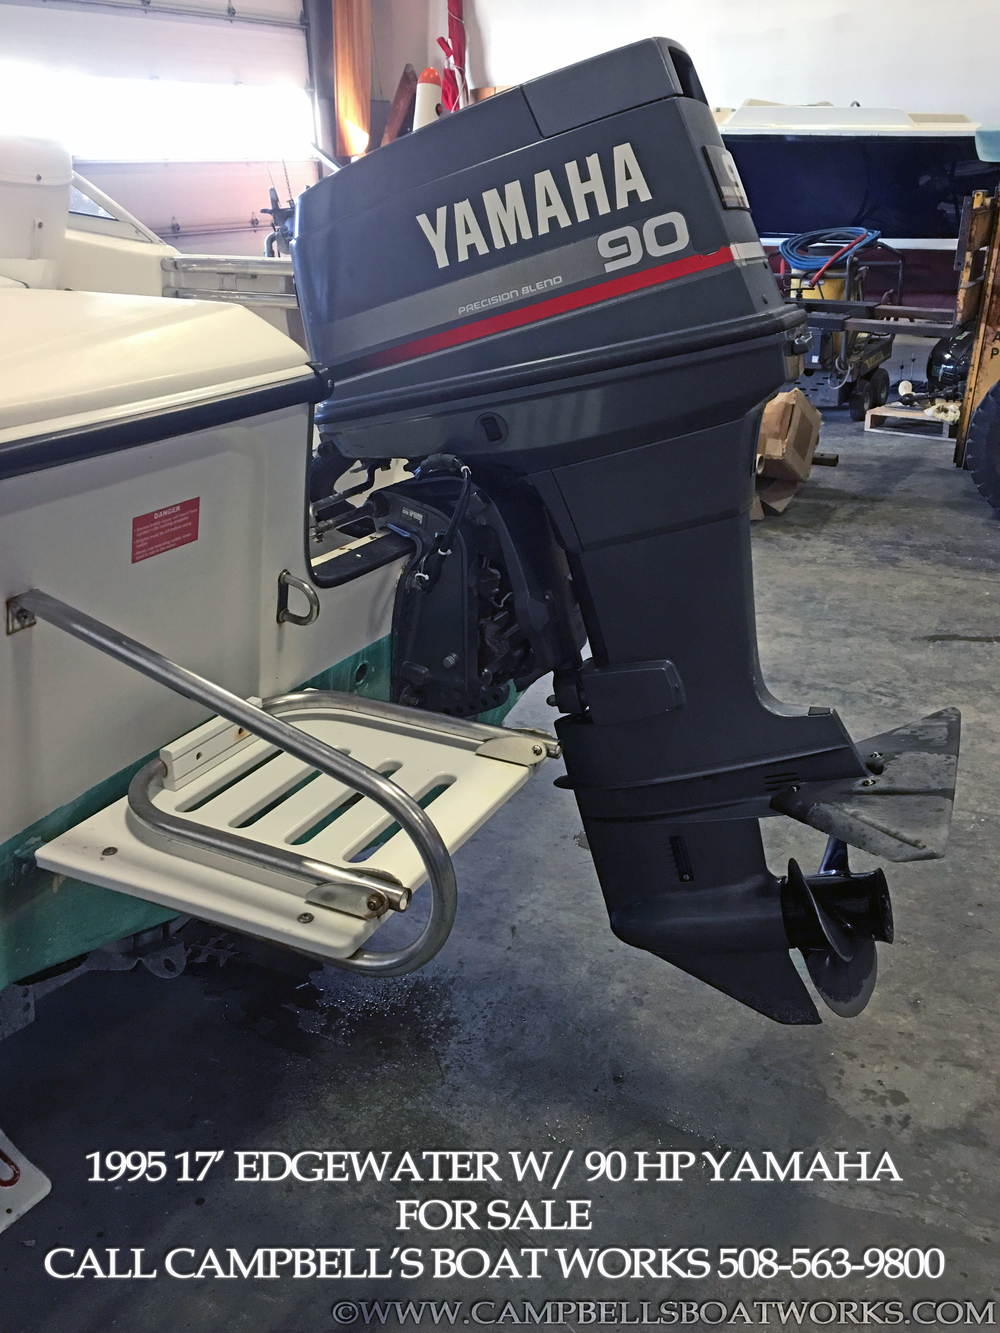 edgewater-17-boat-for-sale-yamaha-outboard.png